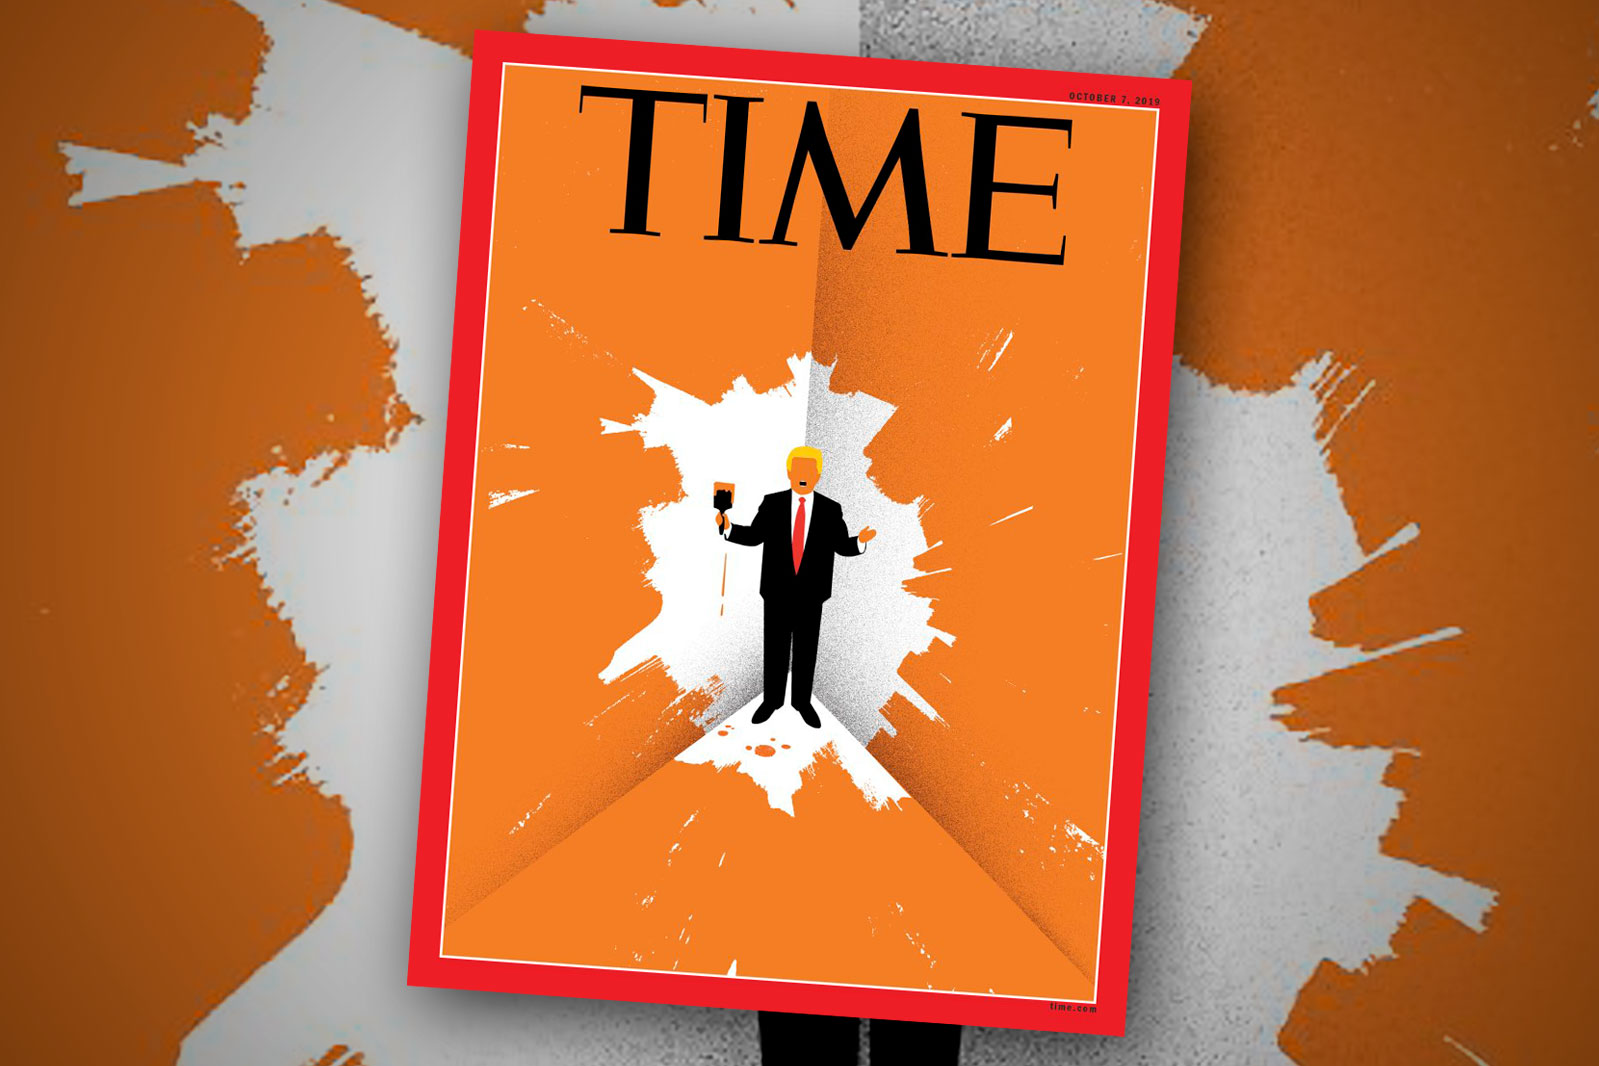 Trump paints himself into a corner on Time's new cover